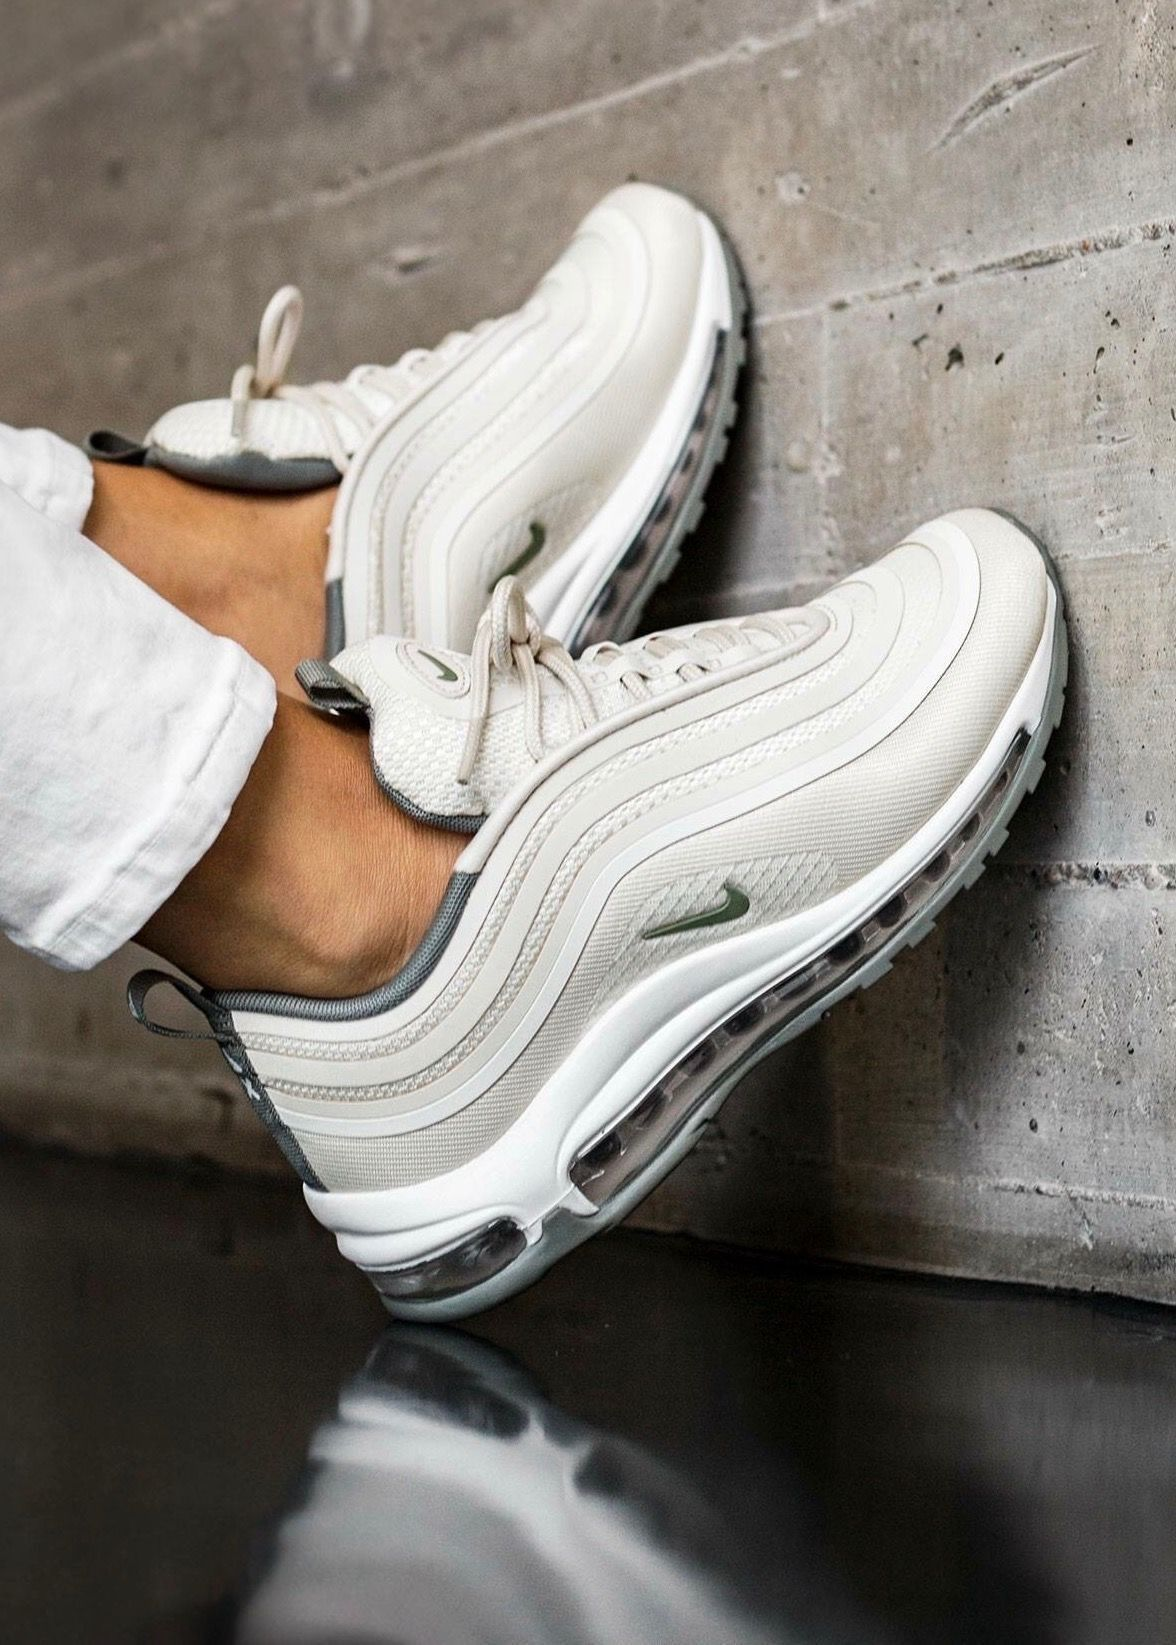 475fdfe36d Nike Air Max 97 - Triple White Full Collection Available On Our Site : ->  DeltitechBrands.com <-